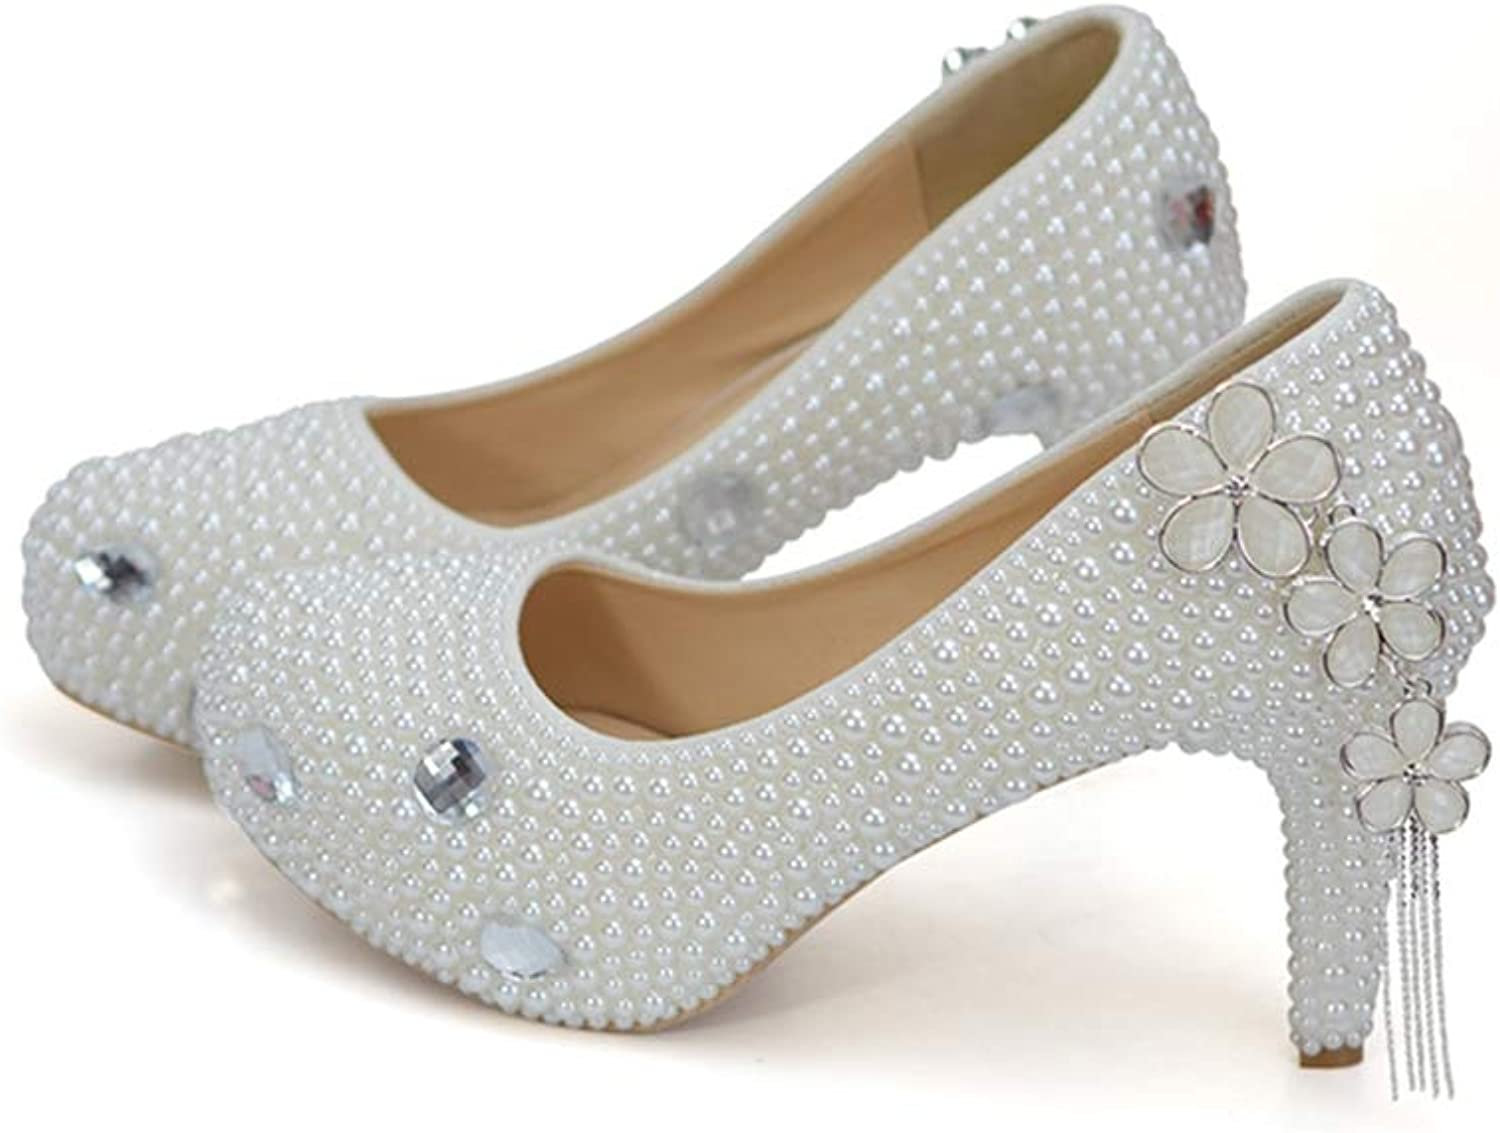 Sparrow White Pearl High Heels for Wedding Round Toe Bridal Dress shoes Women Party Prom shoes Event Platform Pumps